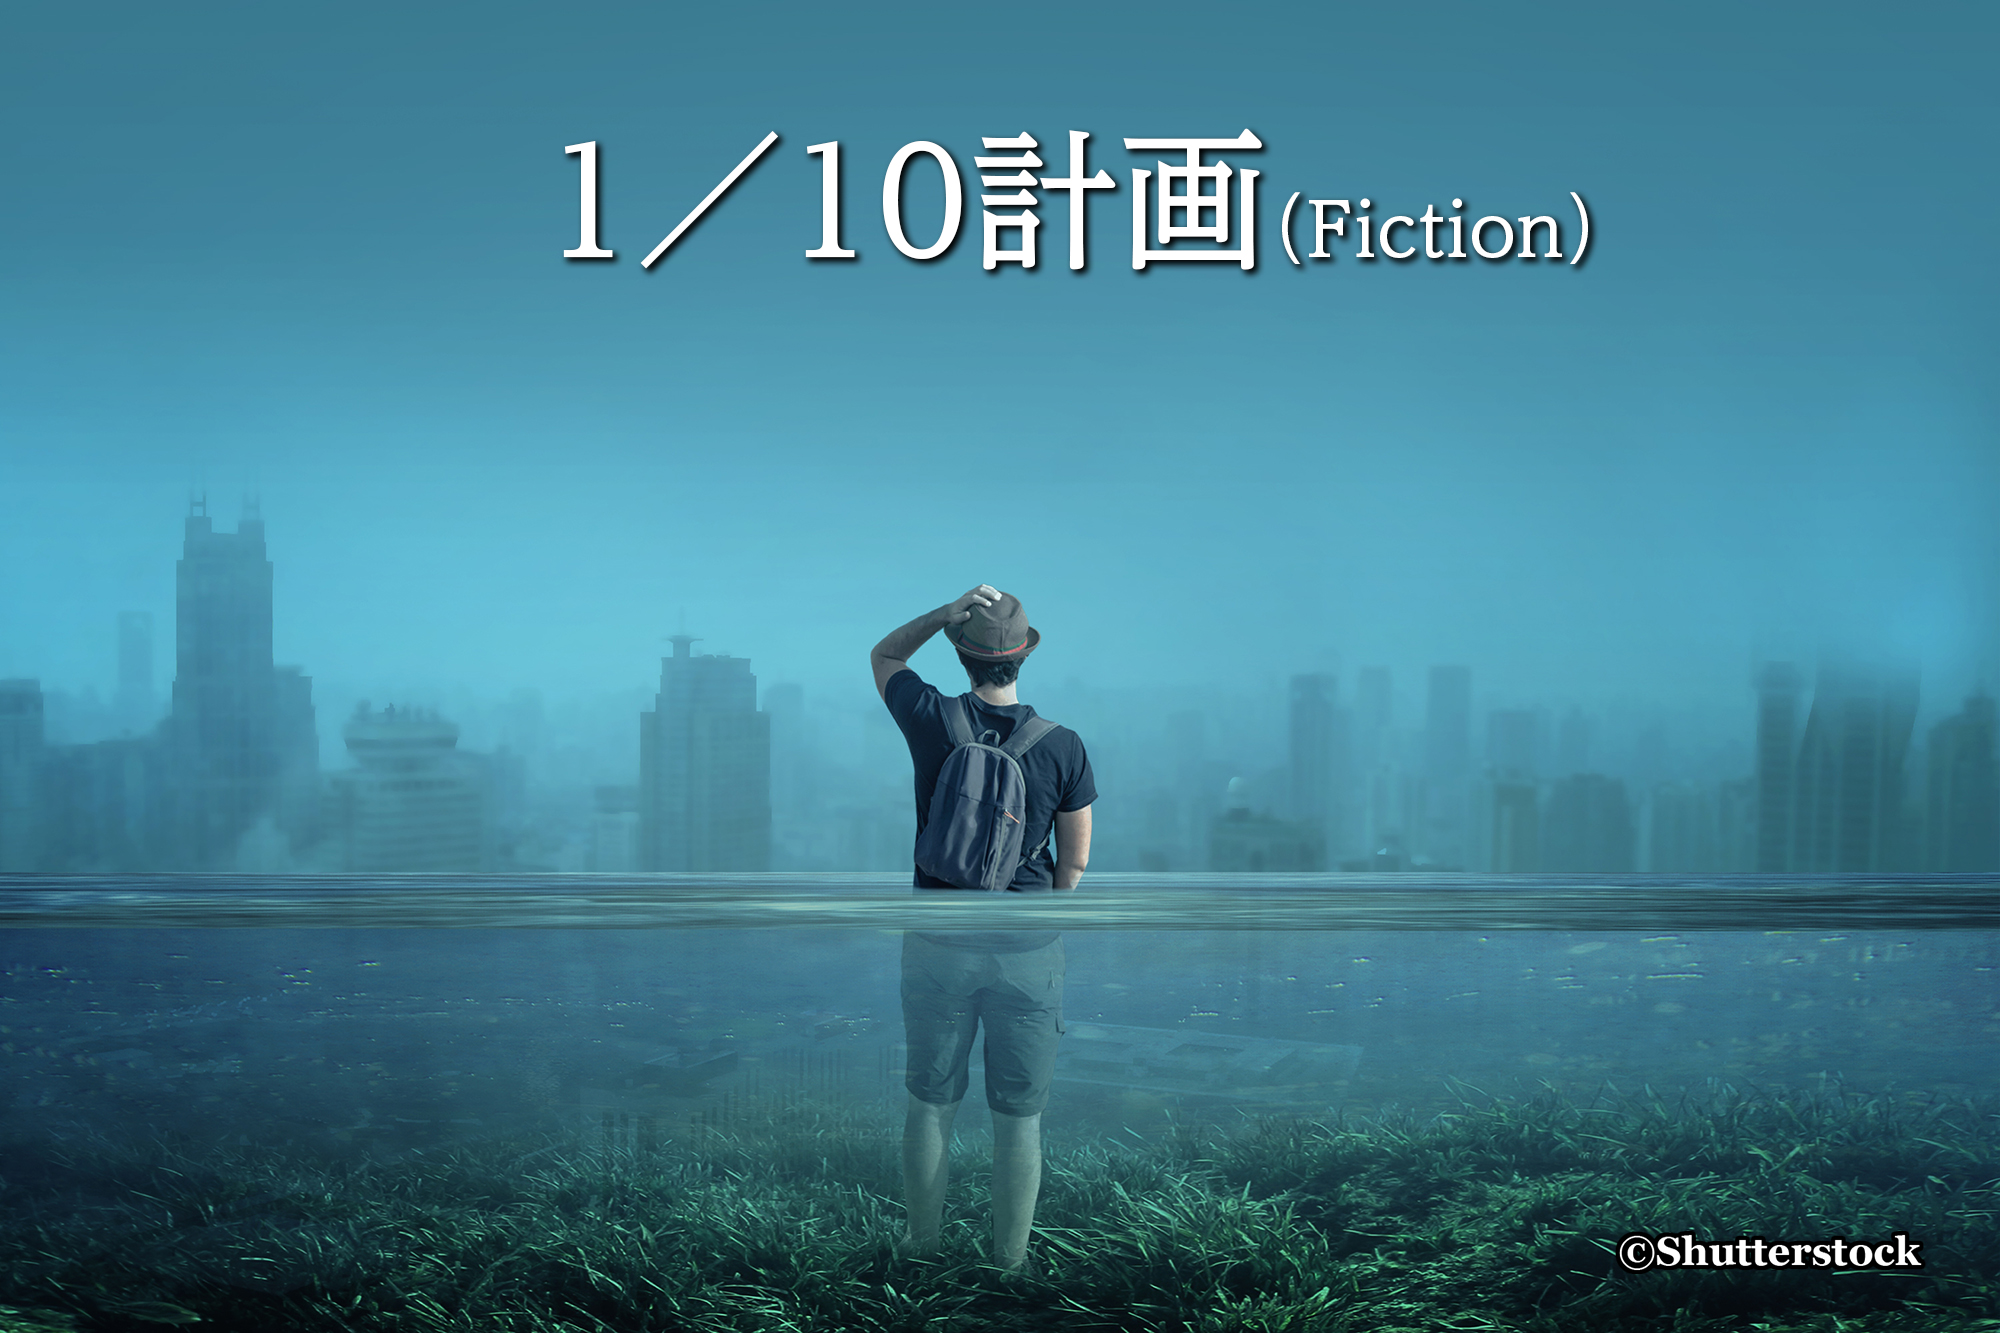 1/10計画(Fiction)